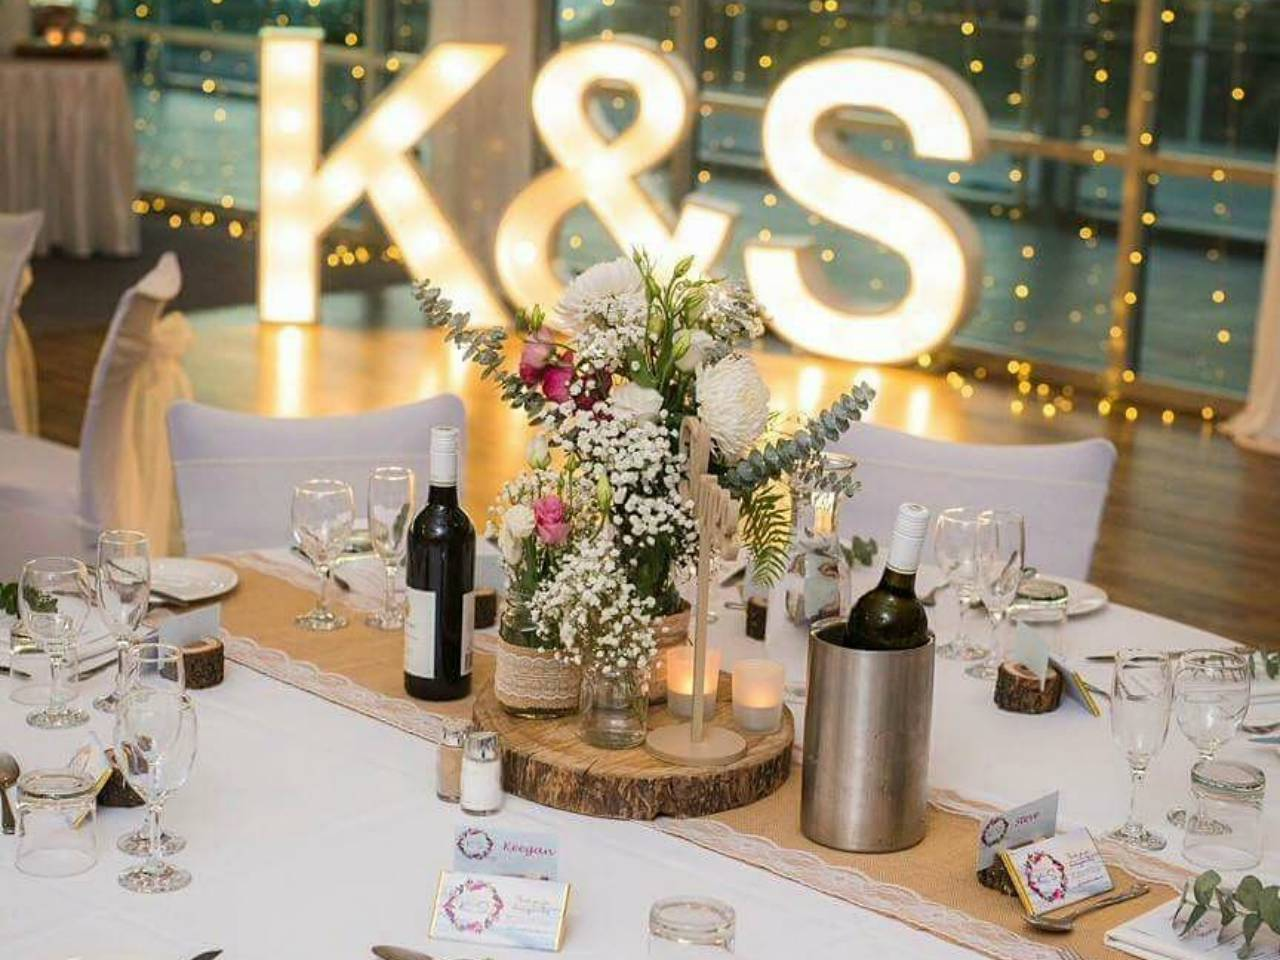 A Wine And Flower Display With Fairylights Behind.